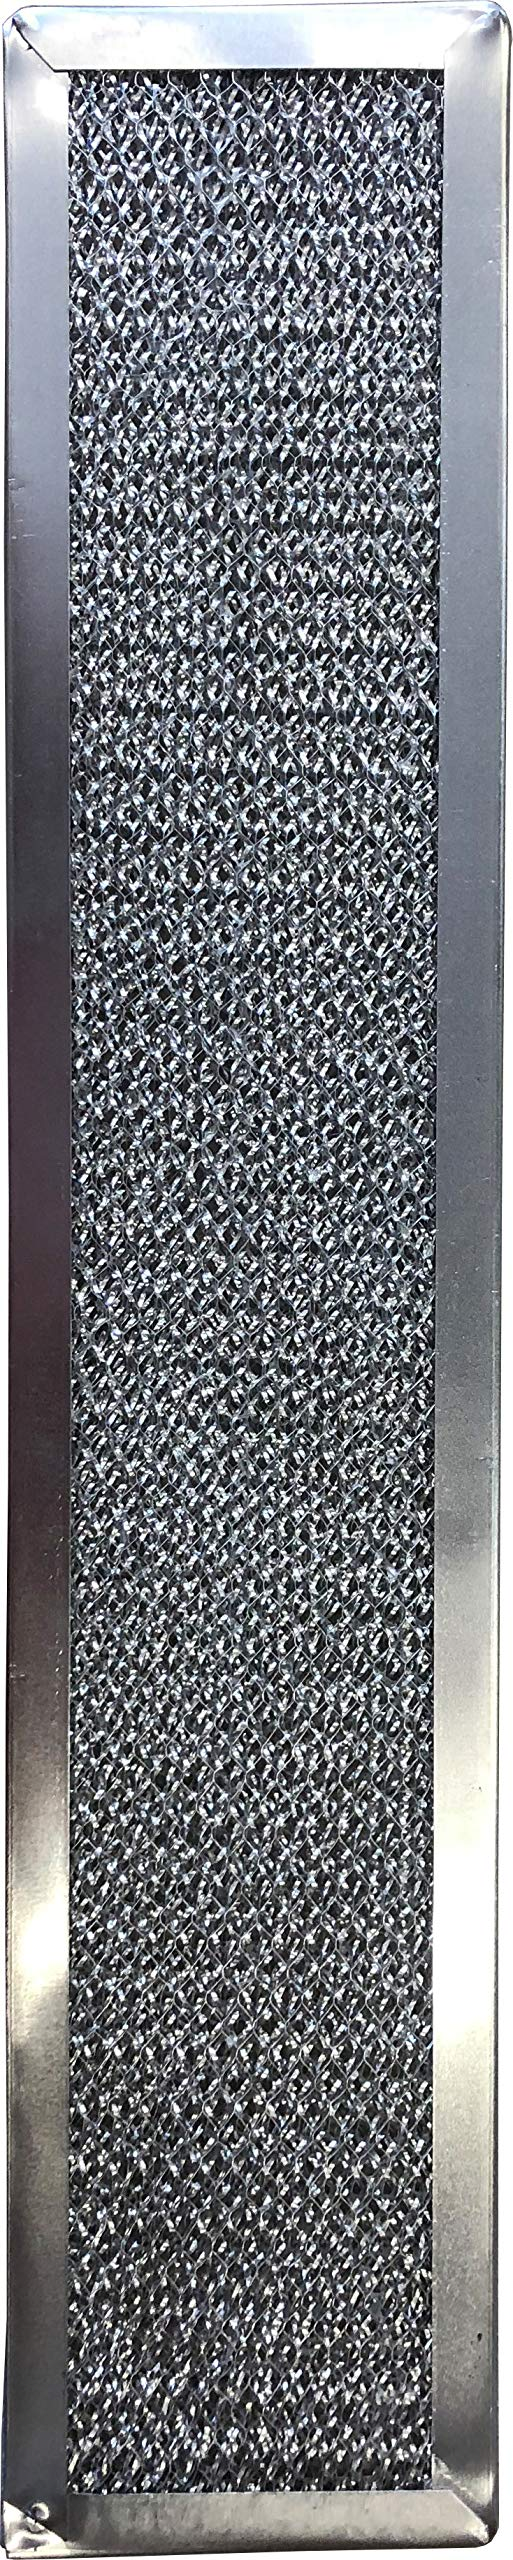 Replacement Aluminum Range Filter Compatible With GE 99010263, GE WB02X8379, GE WB2X8379,G 8111,   6